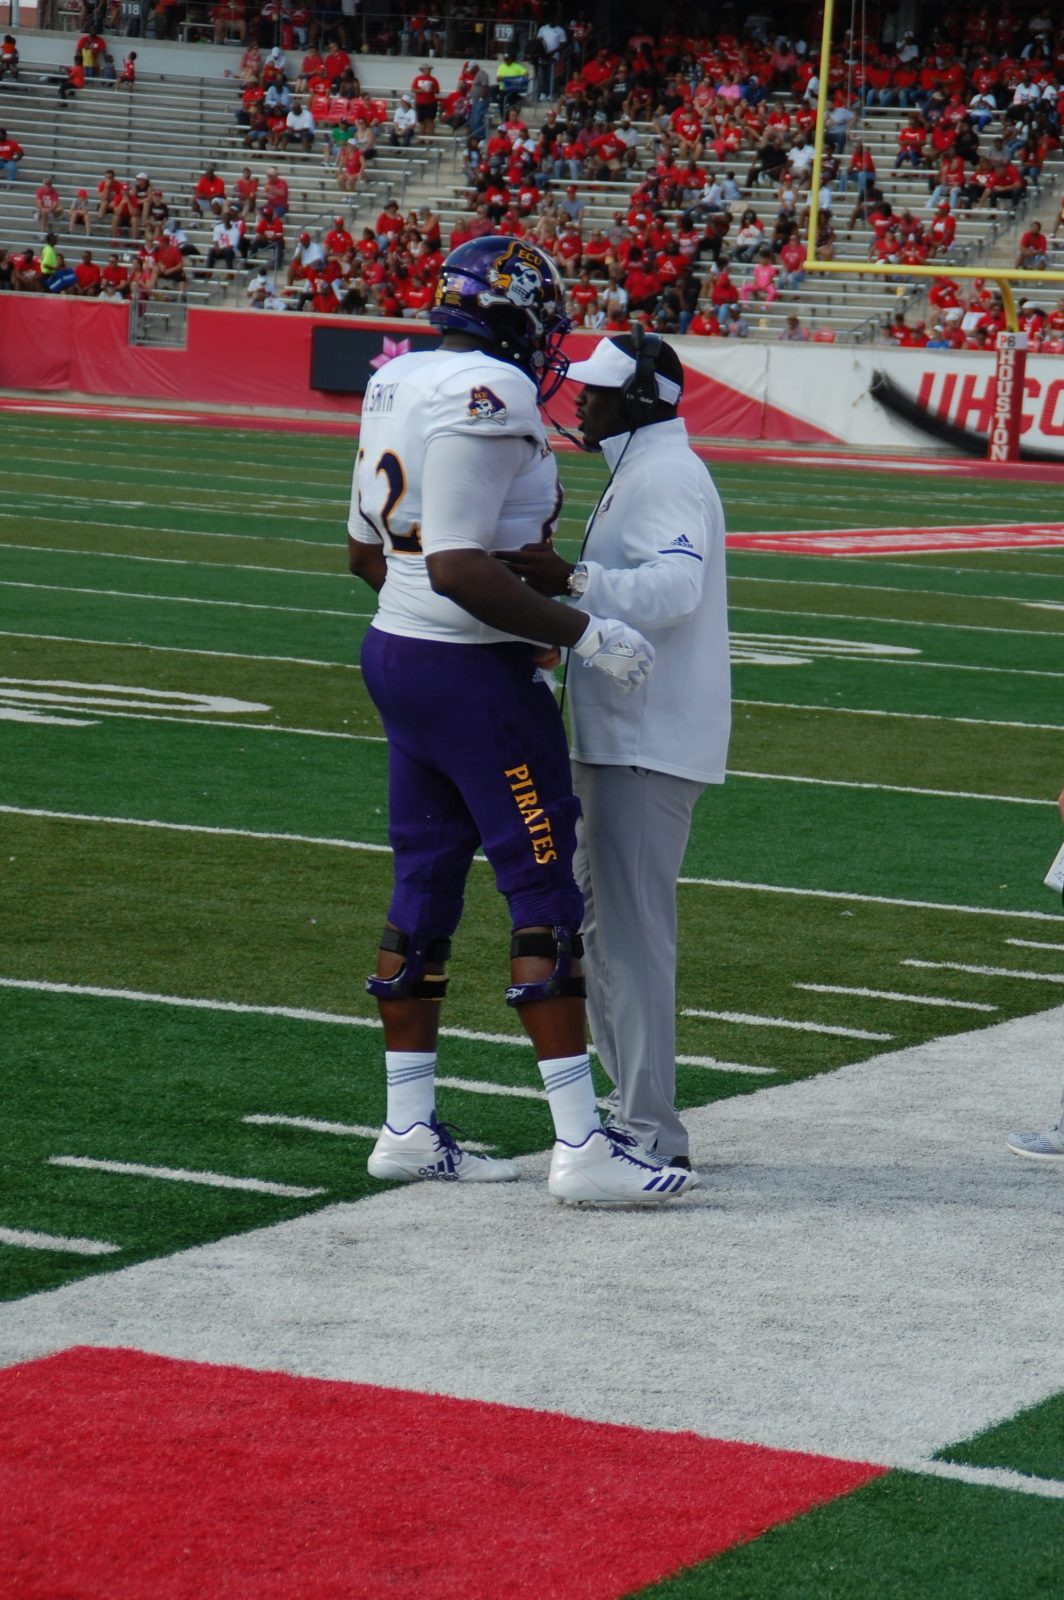 ECU coach Scottie Montgomery has a word with Brandon Smith as the offensive lineman comes off the field. (Photo by Al Myatt)